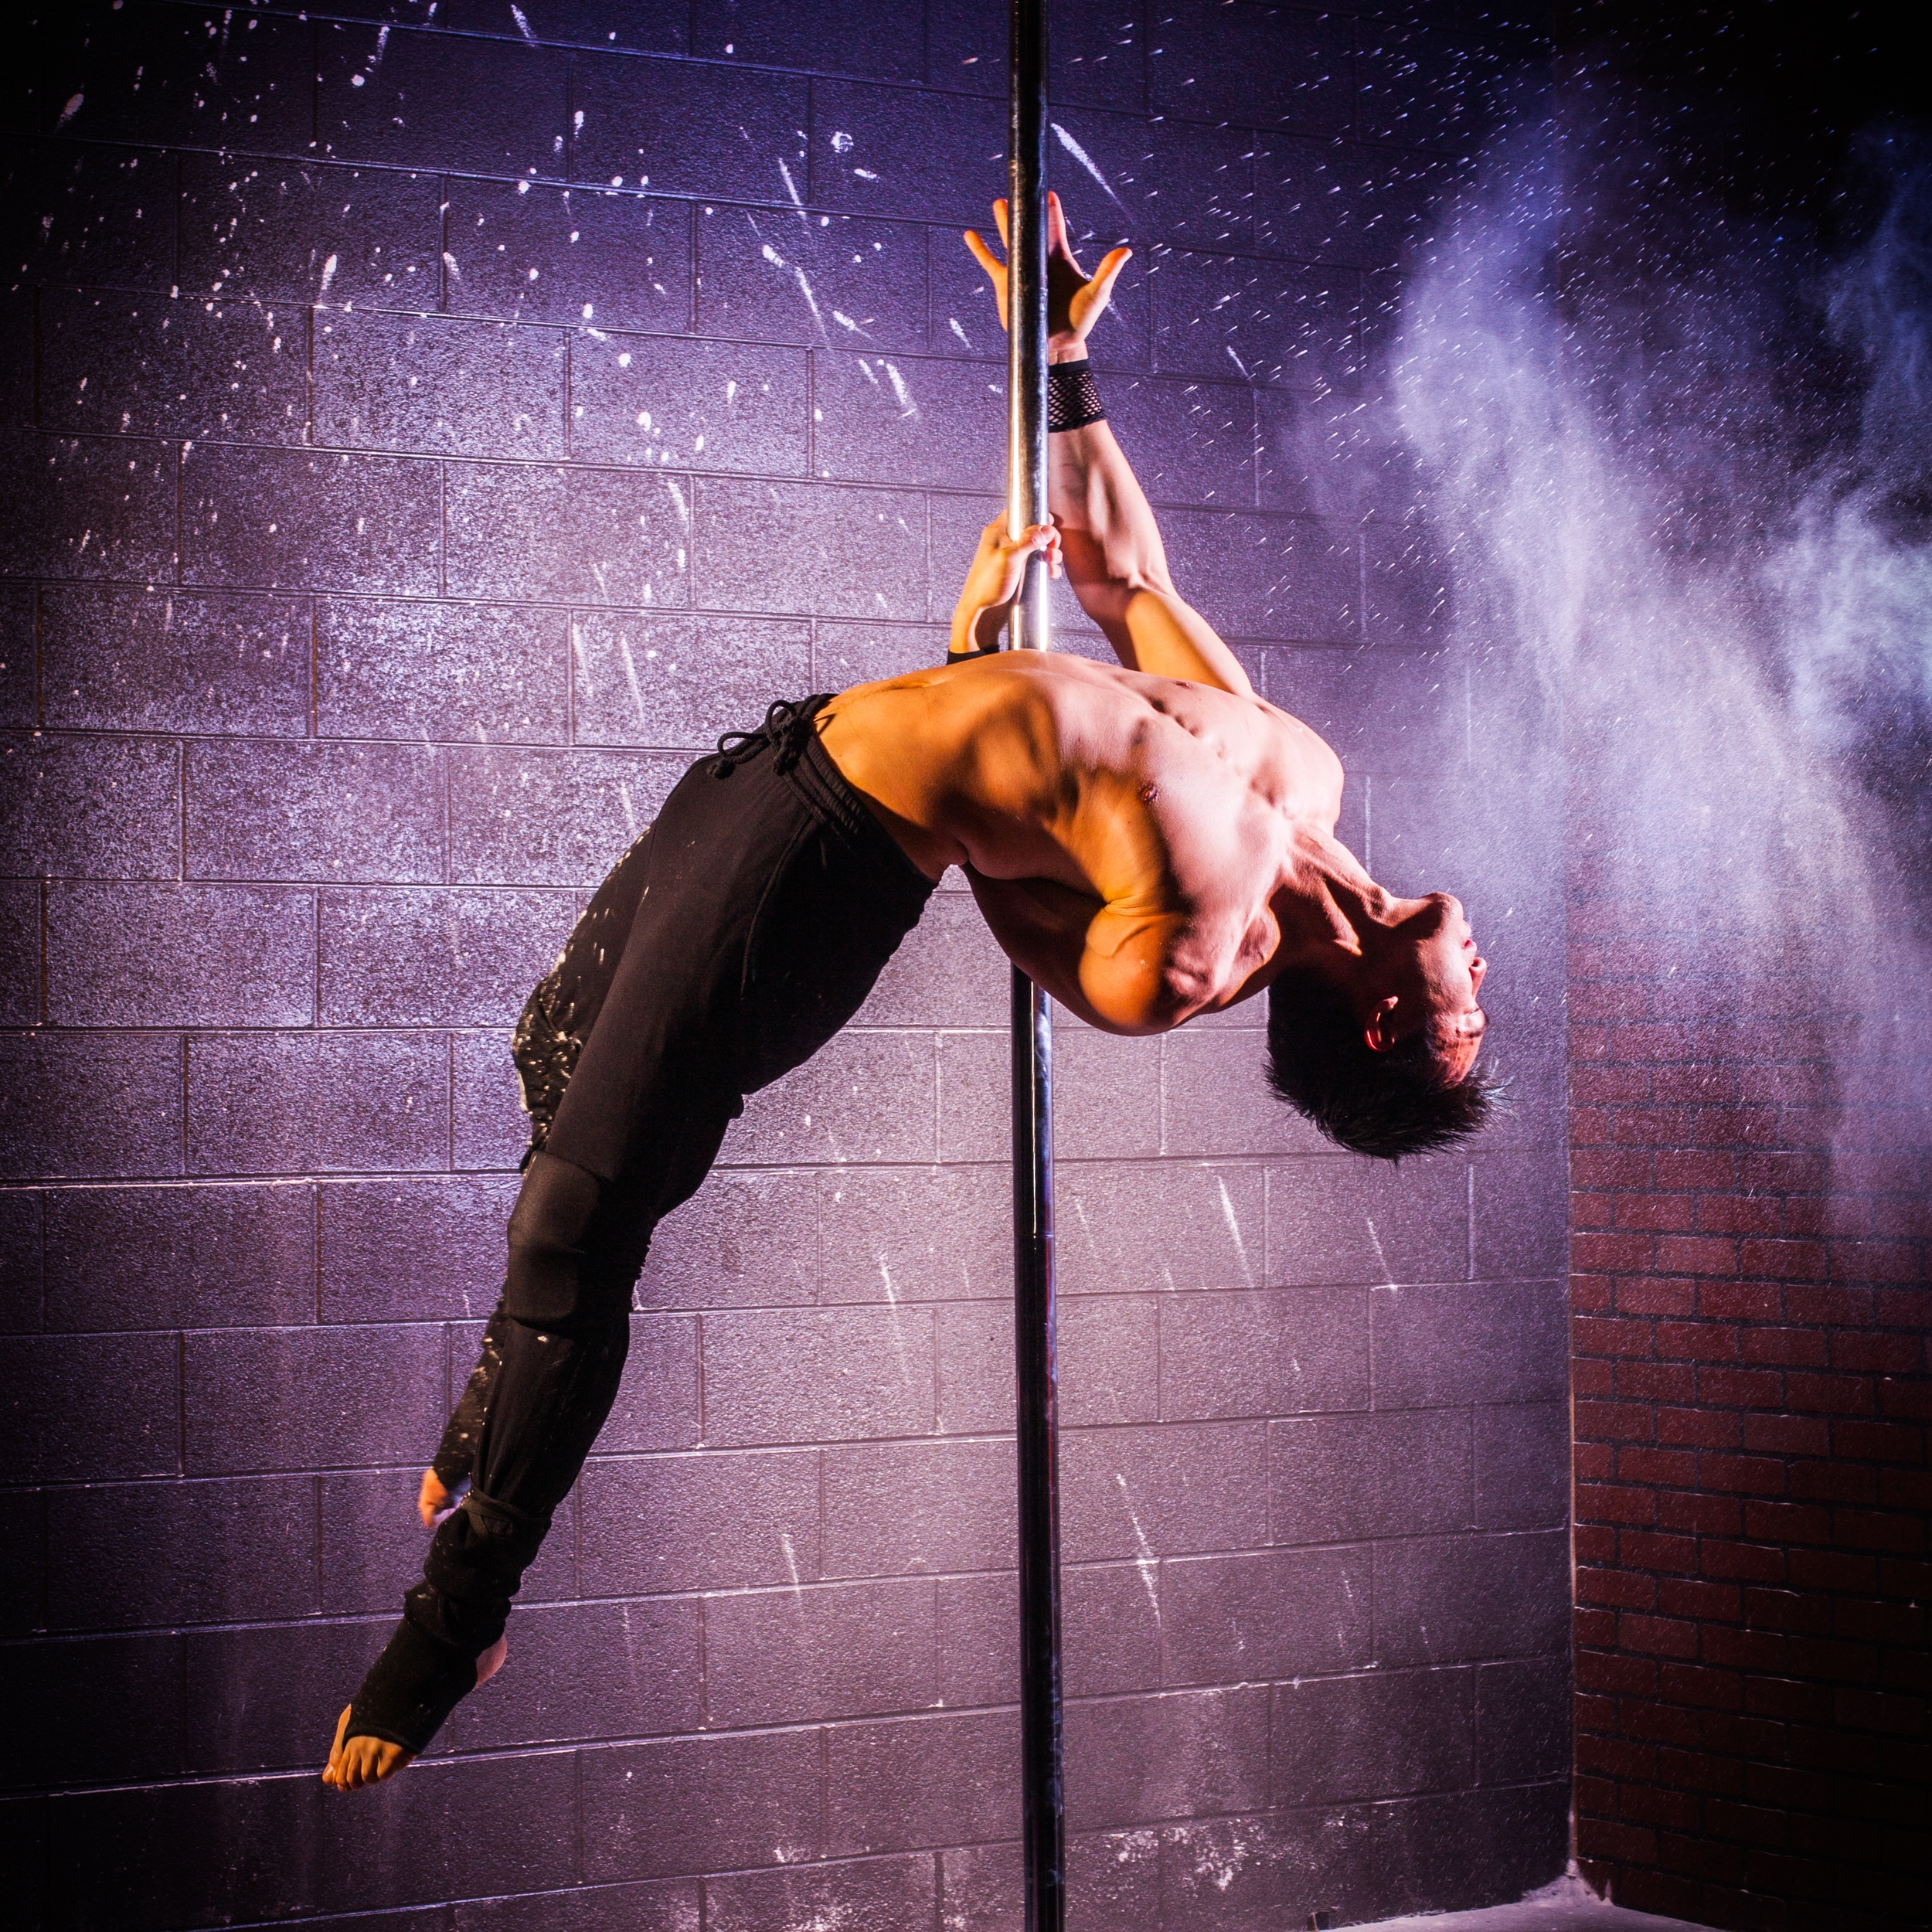 Dancing male strippers photos